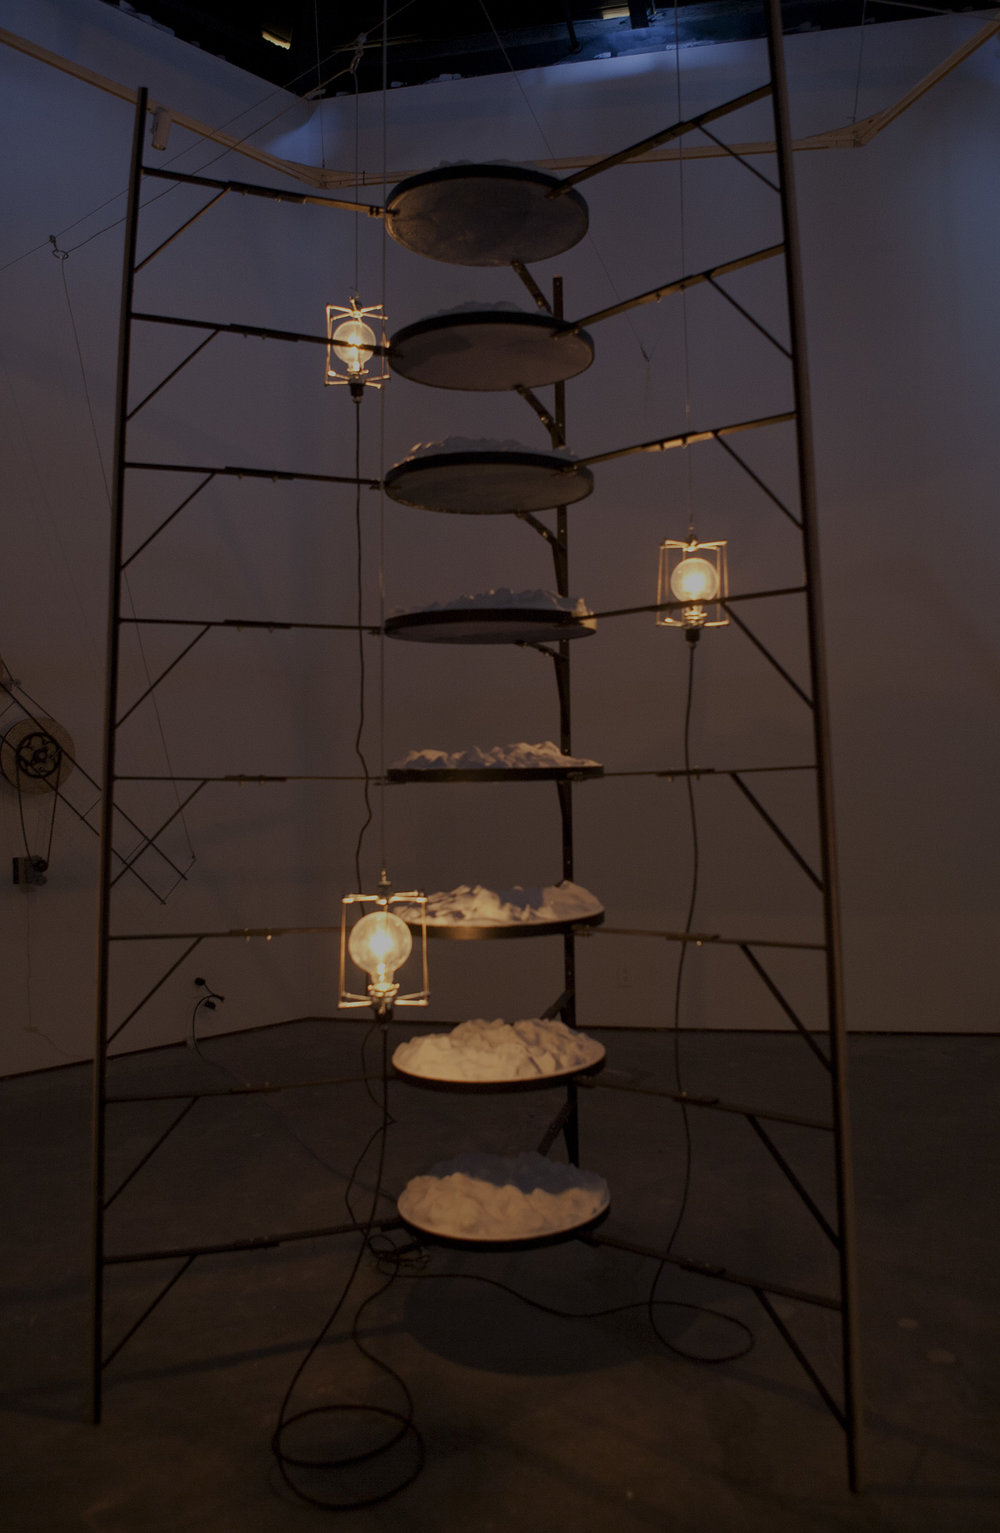 Steel, plaster, paraffin wax, birch plywood, cement, glass, paint, hardware, variable speed dc motors, incandescent bulbs. 2012.